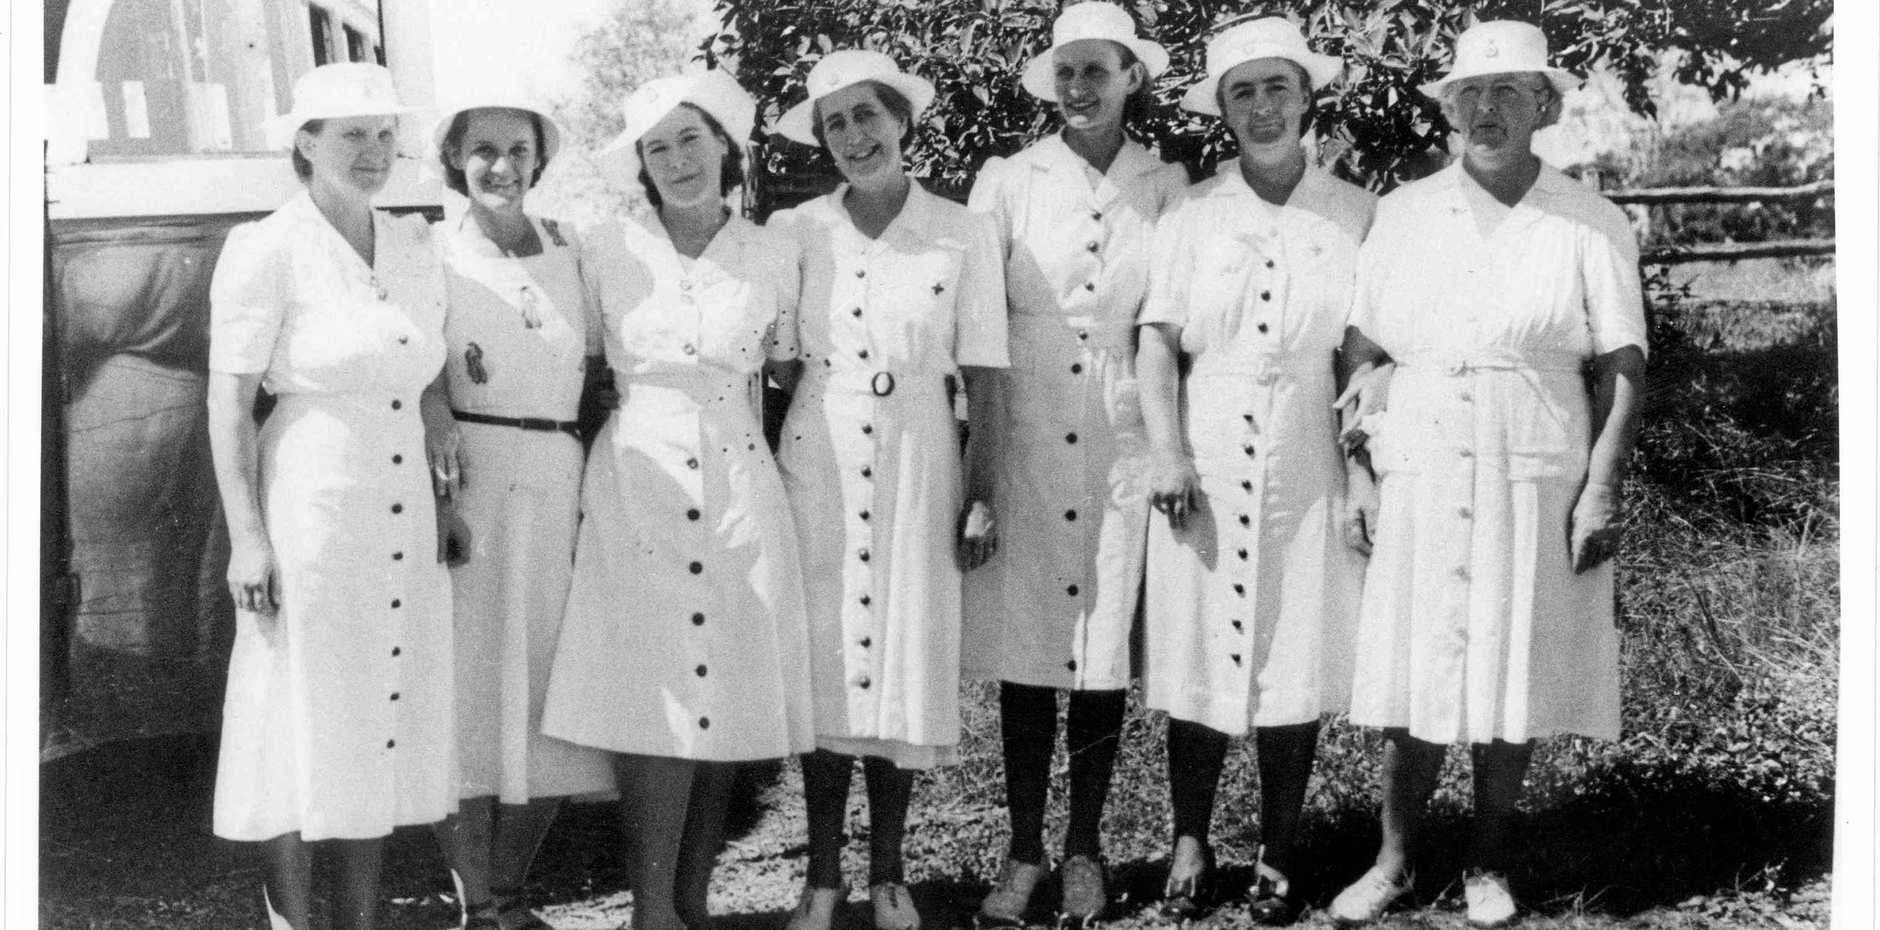 TRADITION OF HELPING: Australian Red Cross Society Gladstone Branch, mid 1940's, (L-R) Mrs Prizeman, Mrs Elliot, Mrs Kahler, Mrs A.H. Friend, Mrs Draper, Mrs Jordan and Mrs Jo Rigby. Photo Contributed